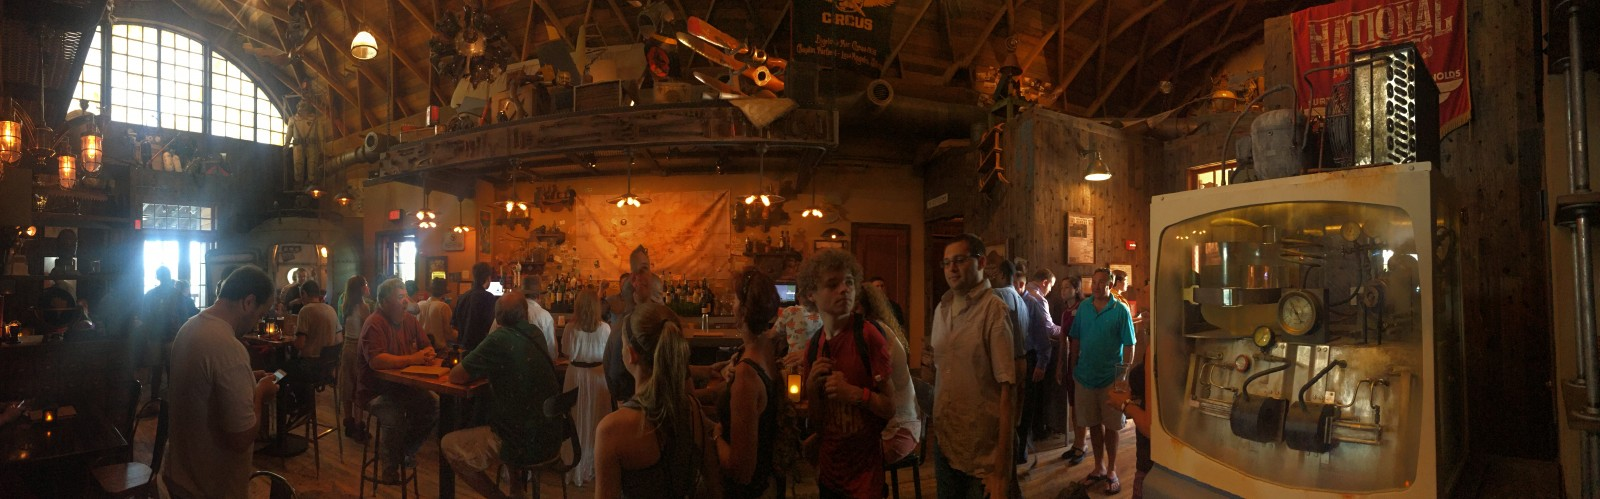 Jock Lindsey's Hangar Bar - Interior Panoramic